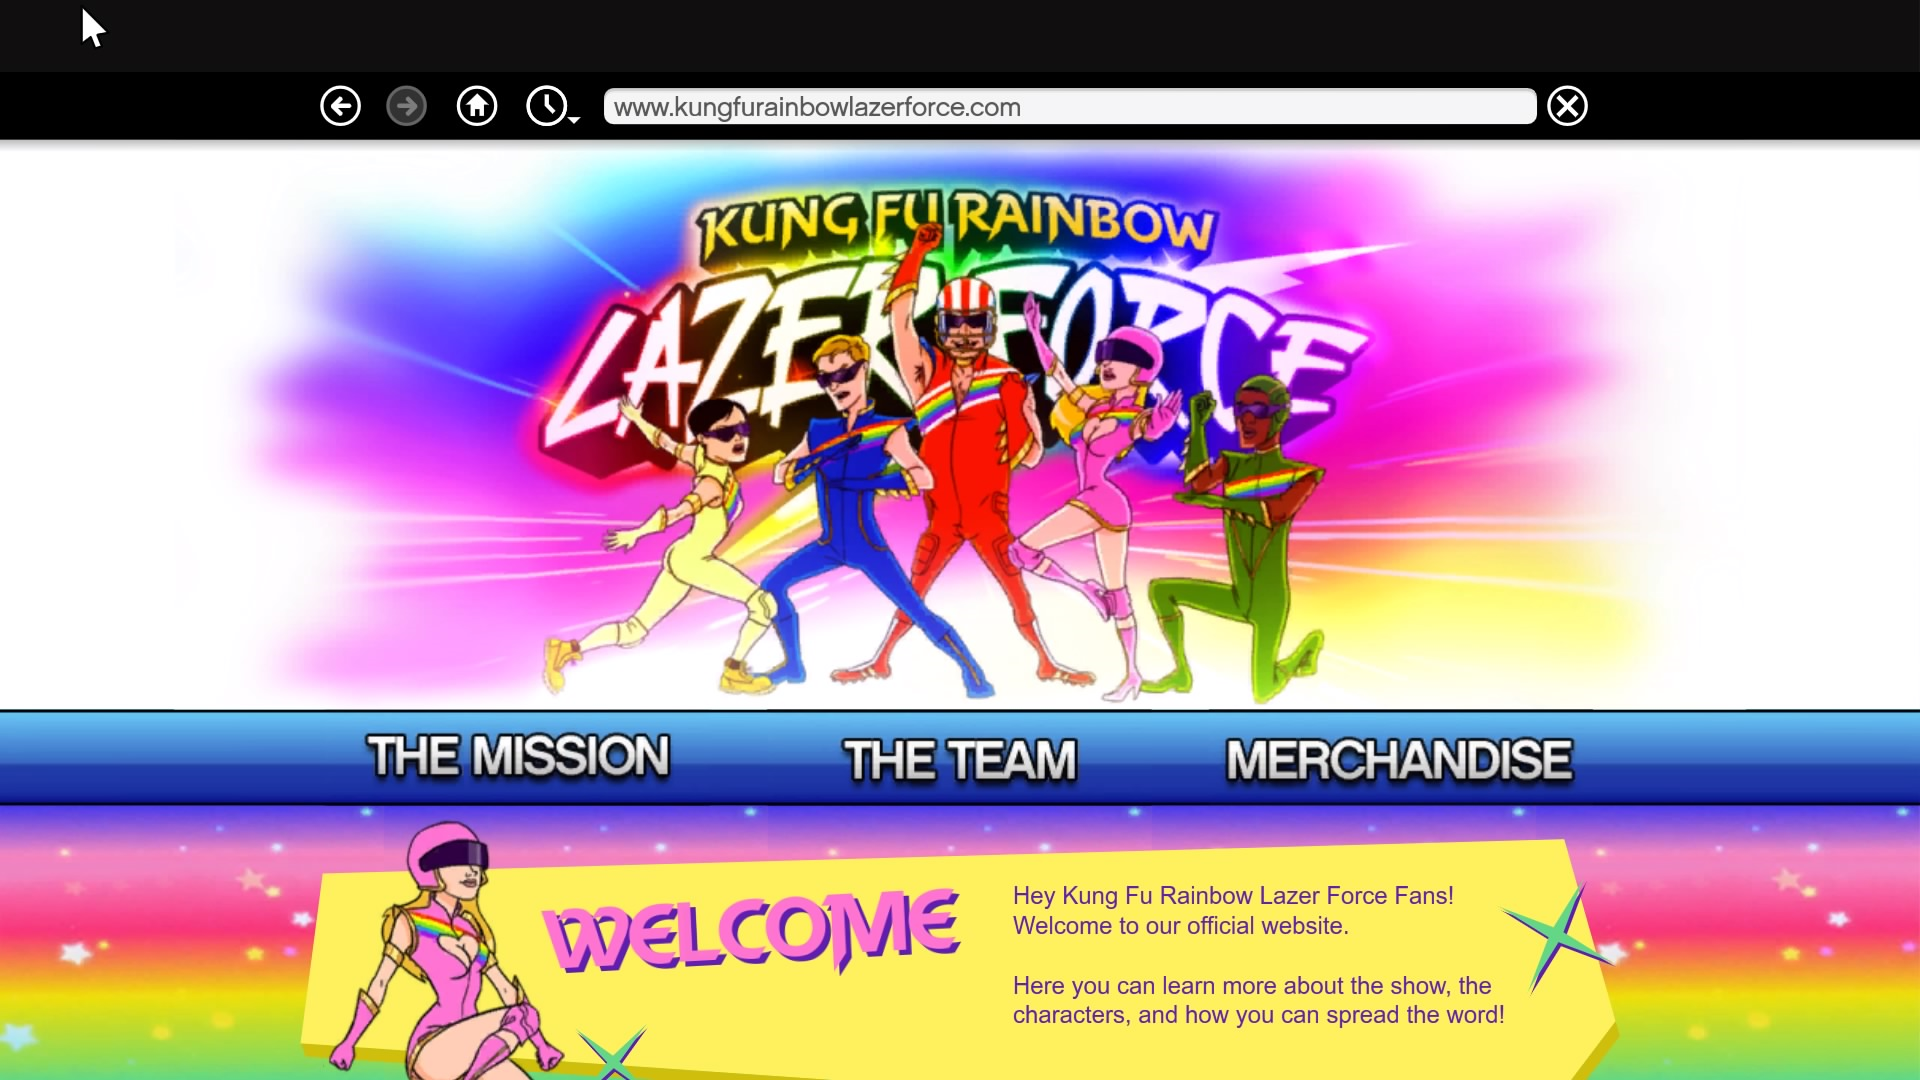 kungfurainbowlazerforce com | GTA Wiki | FANDOM powered by Wikia